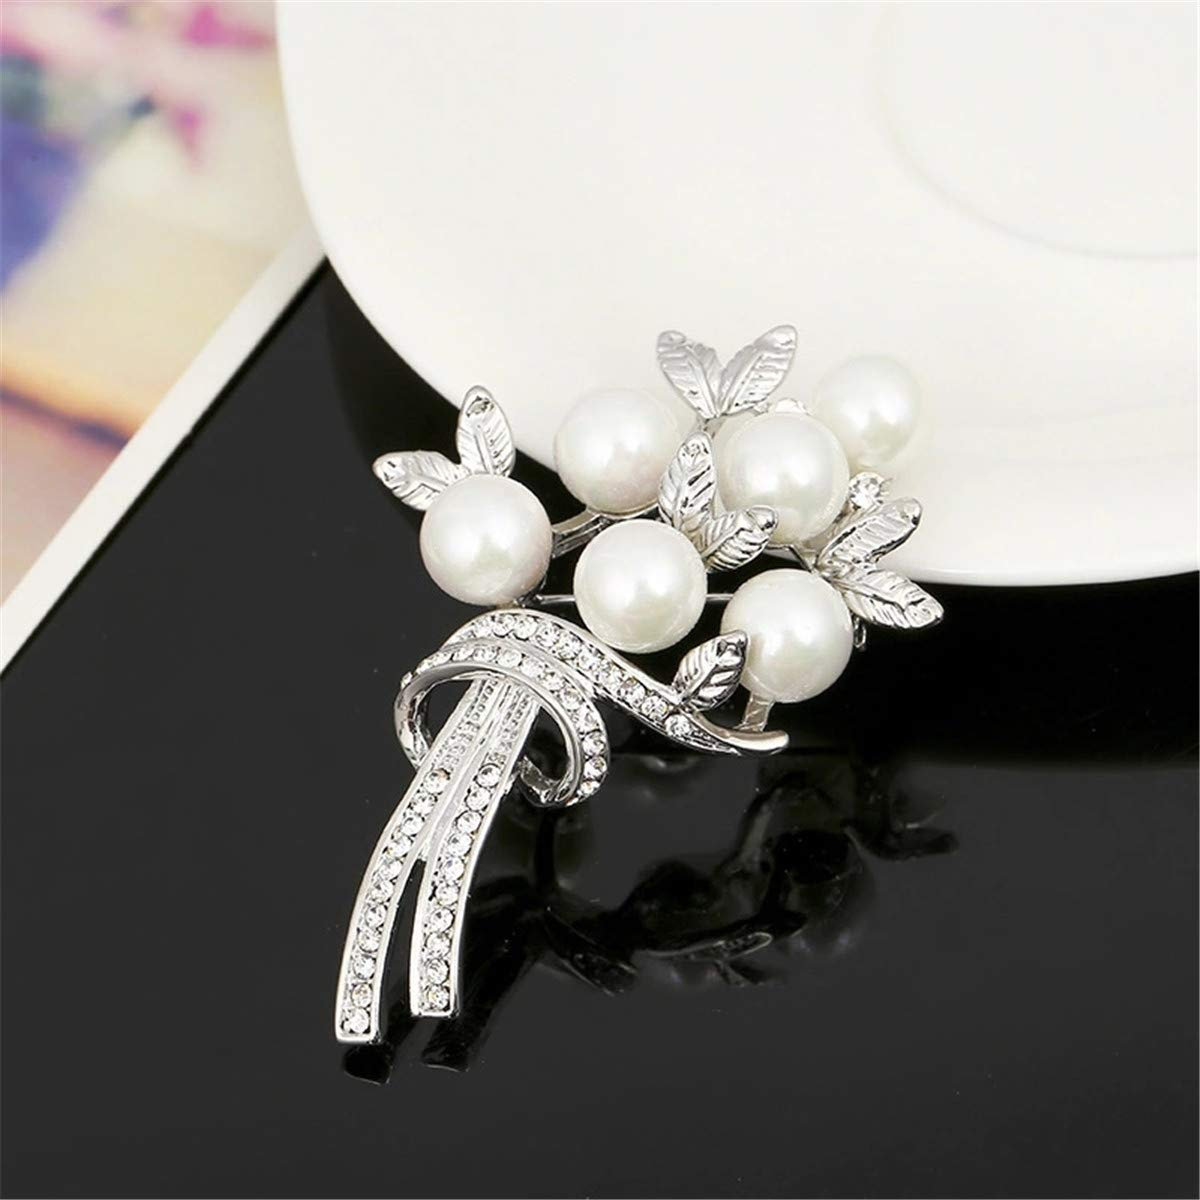 Tree Pearl Brooch Pins Mrsrui Brooches for Women with Crystal Vintage Brooch Gifts for Christmas//Daily//Birthday